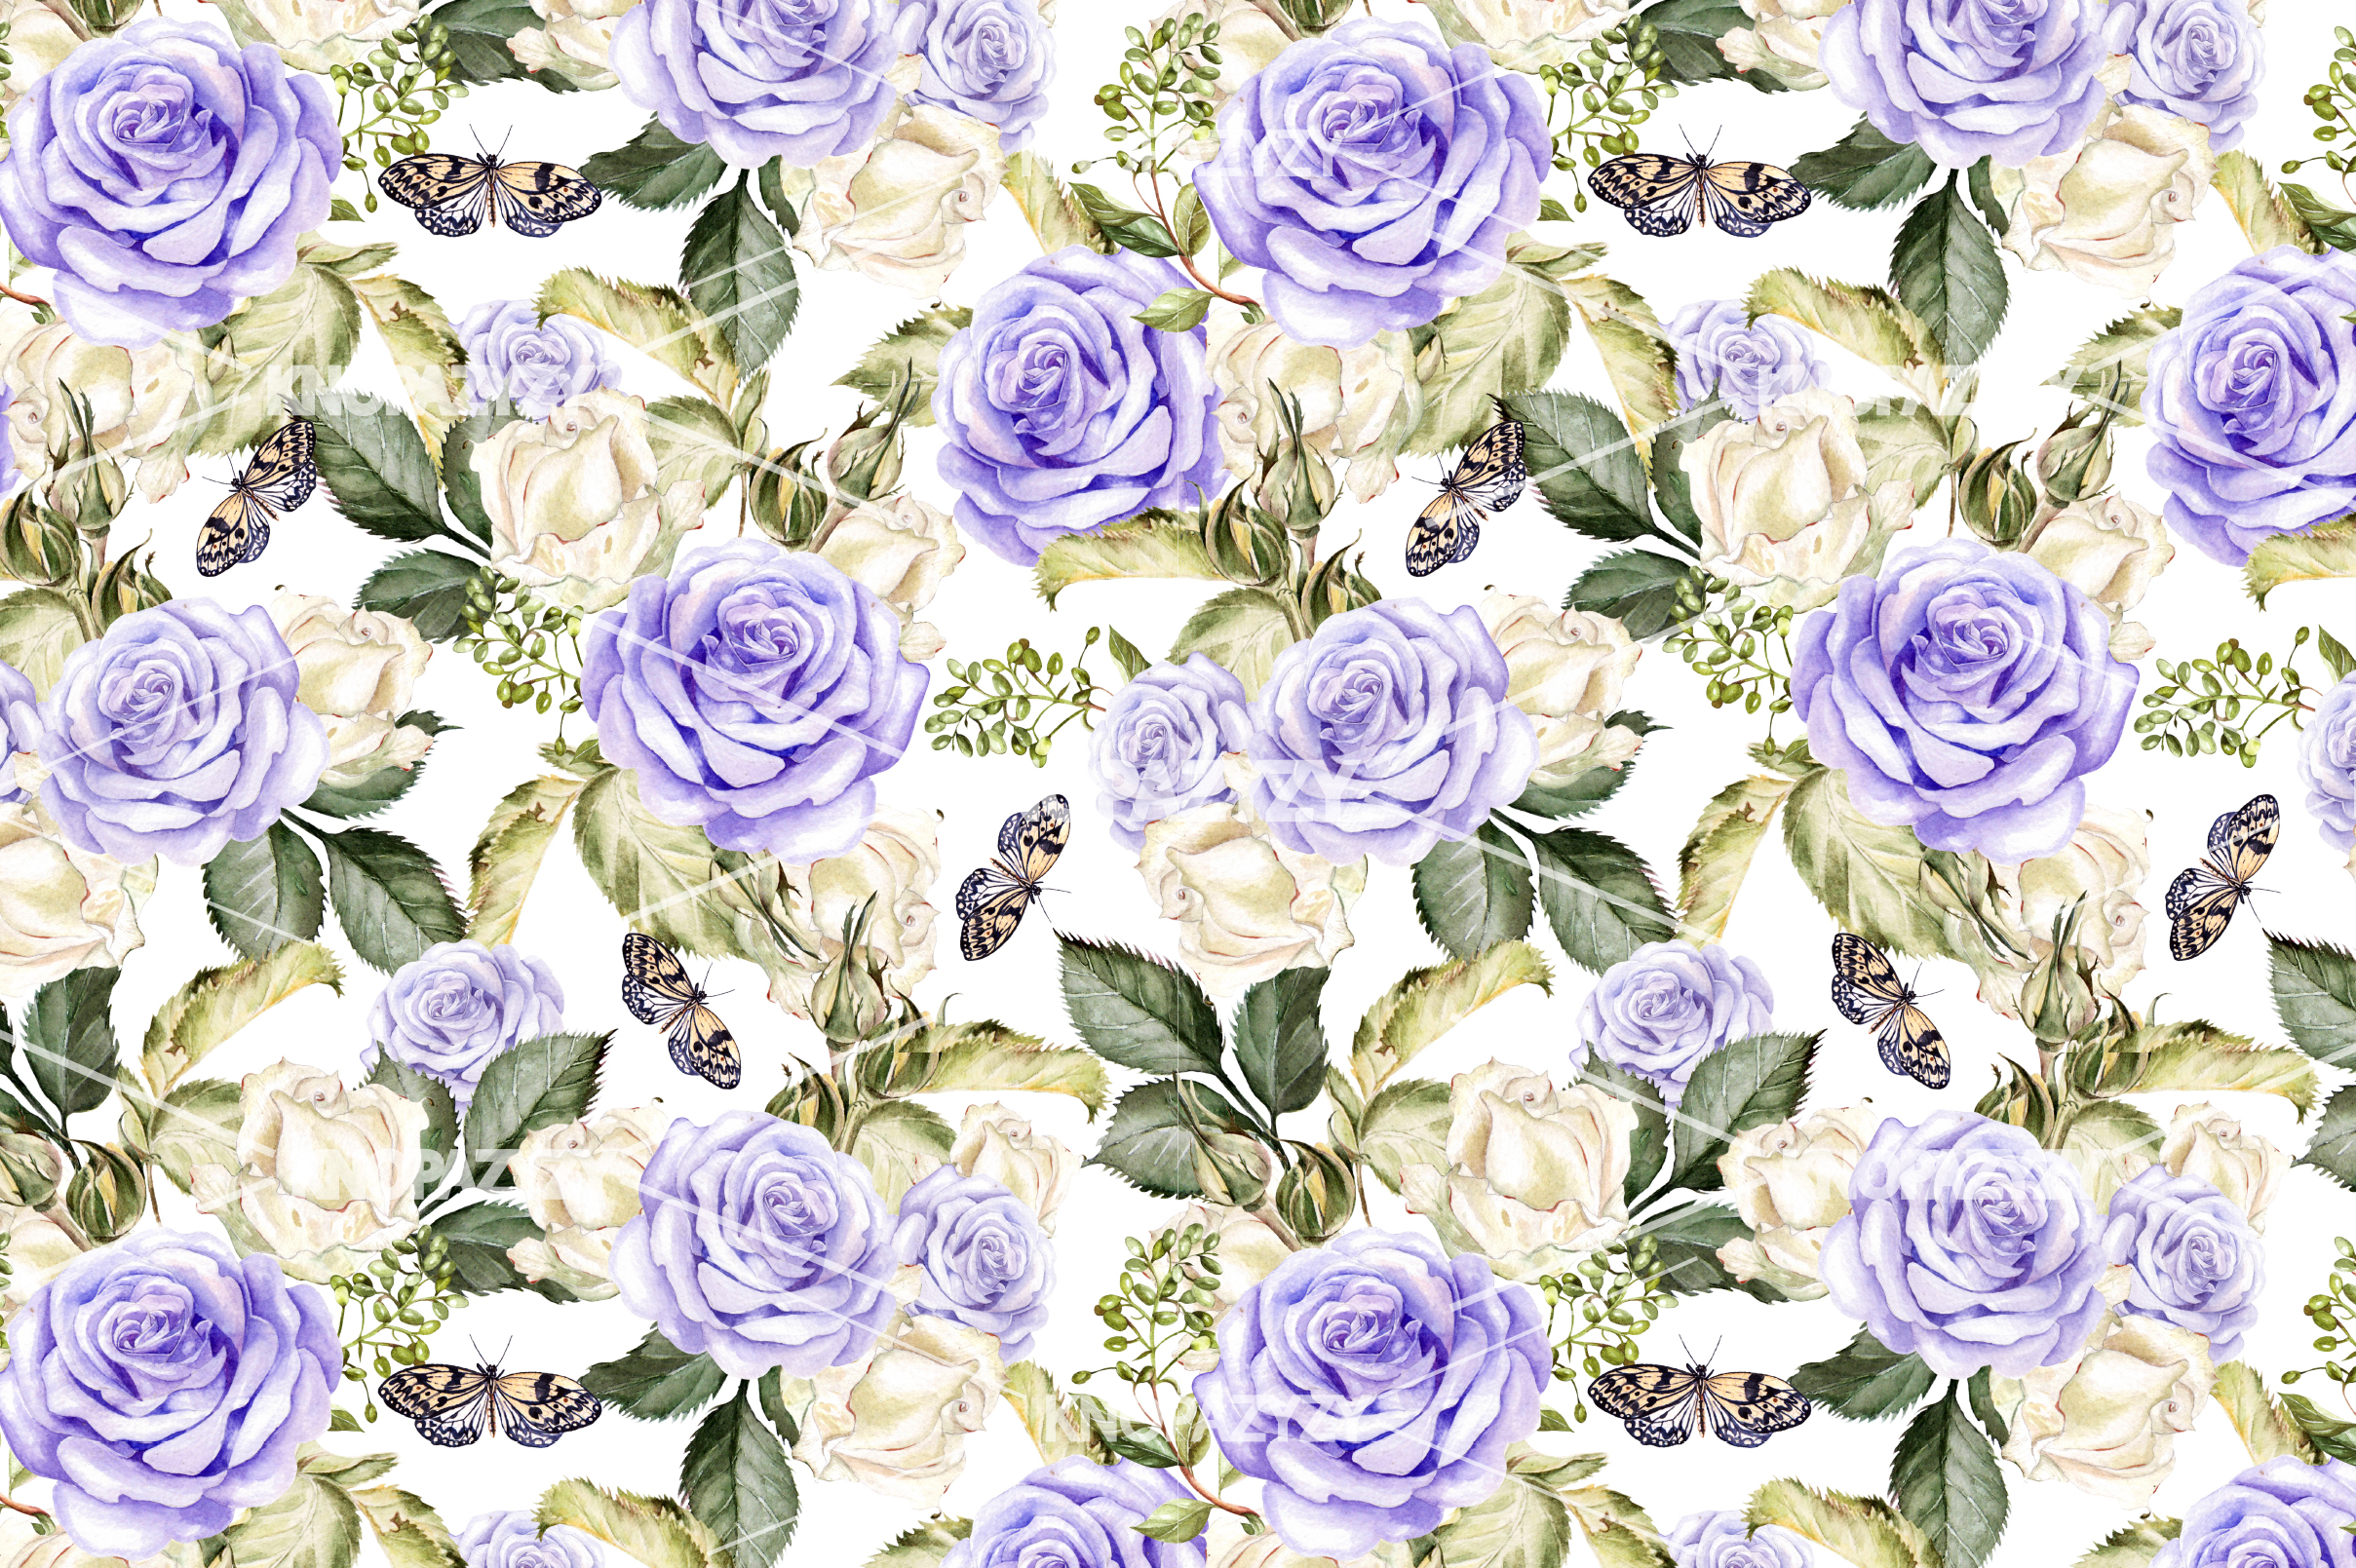 14 Hand drawn watercolor patterns example image 8